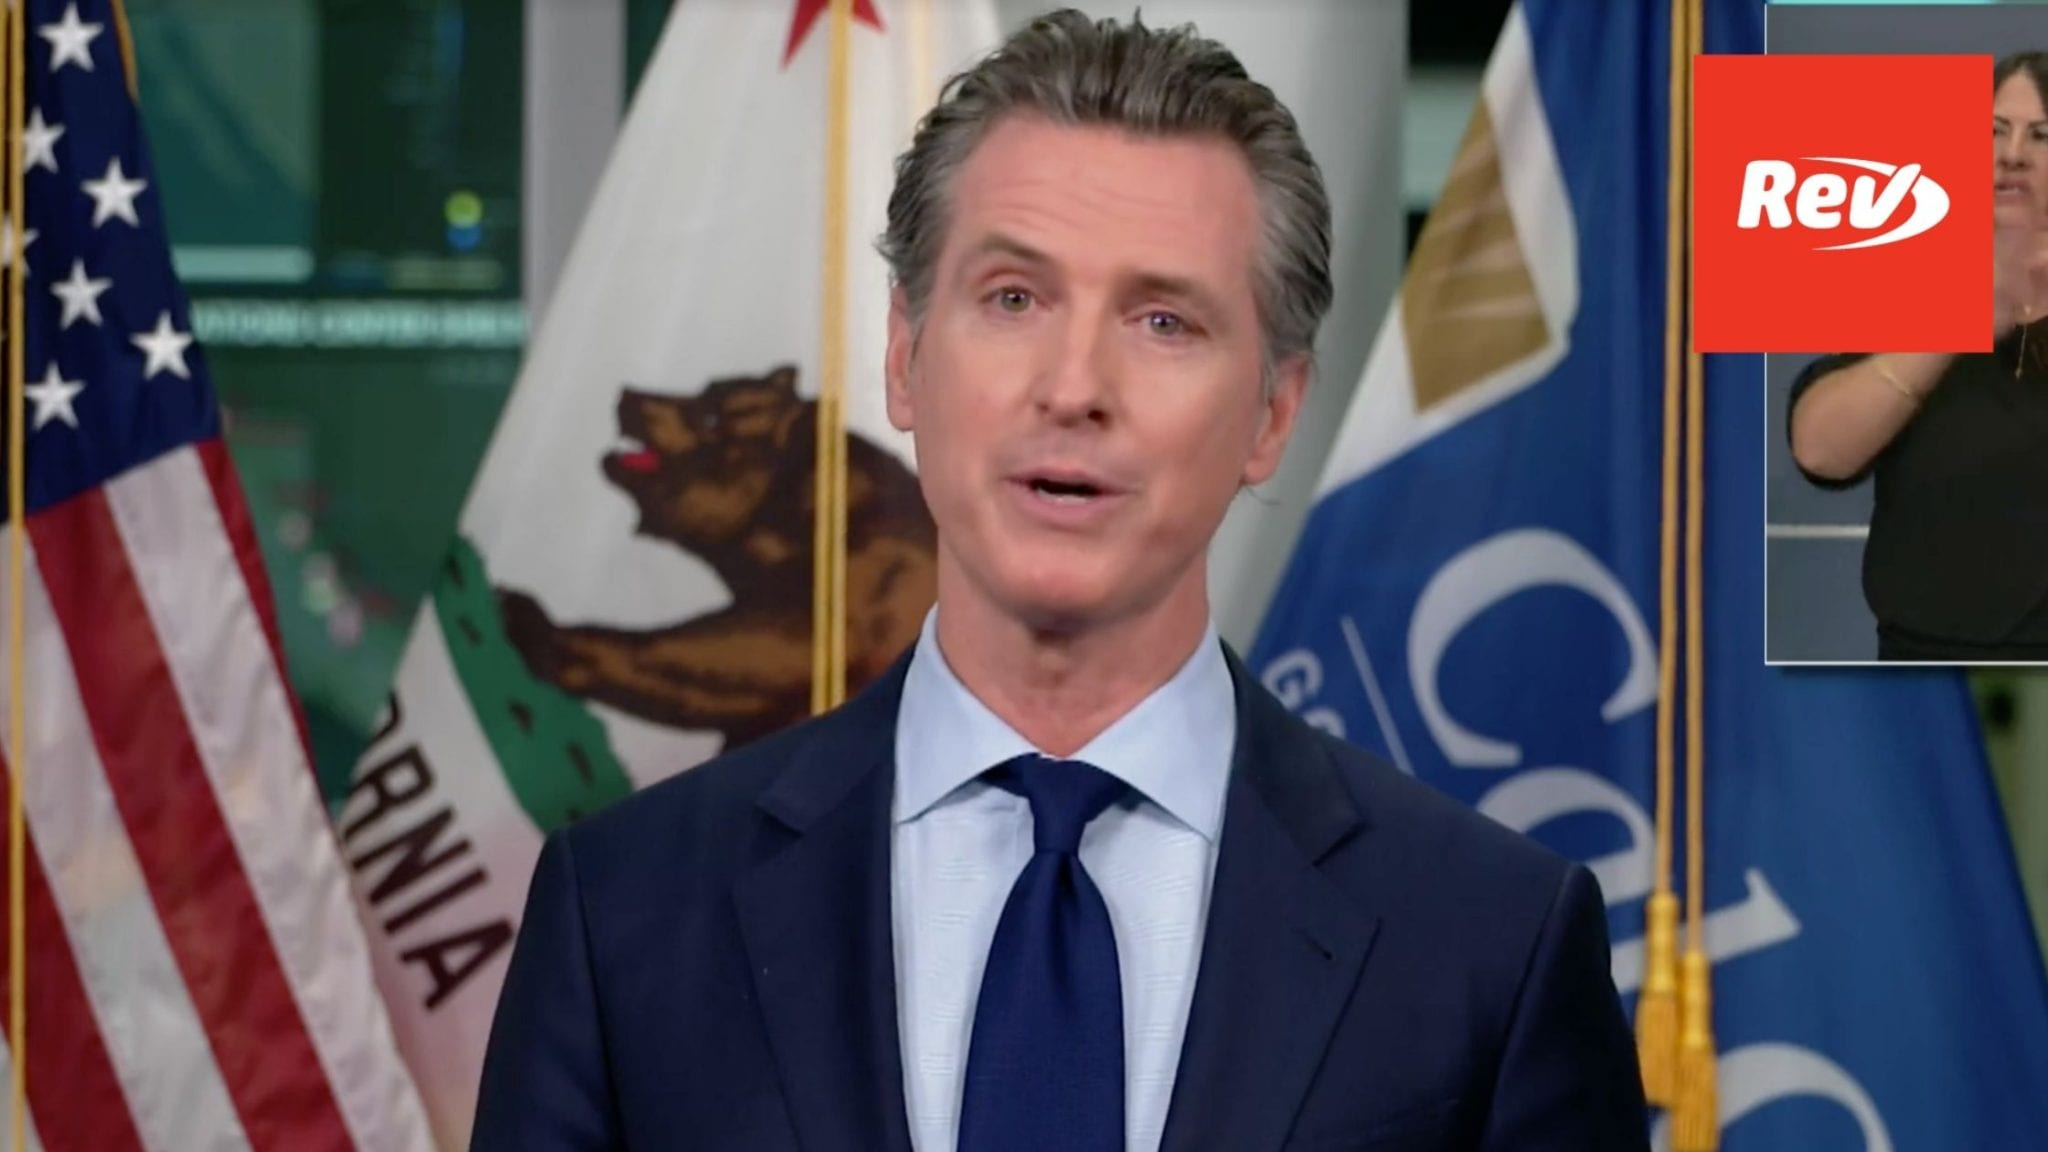 Gavin Newsom October 19 Press Conference on COVID & California Wildfires